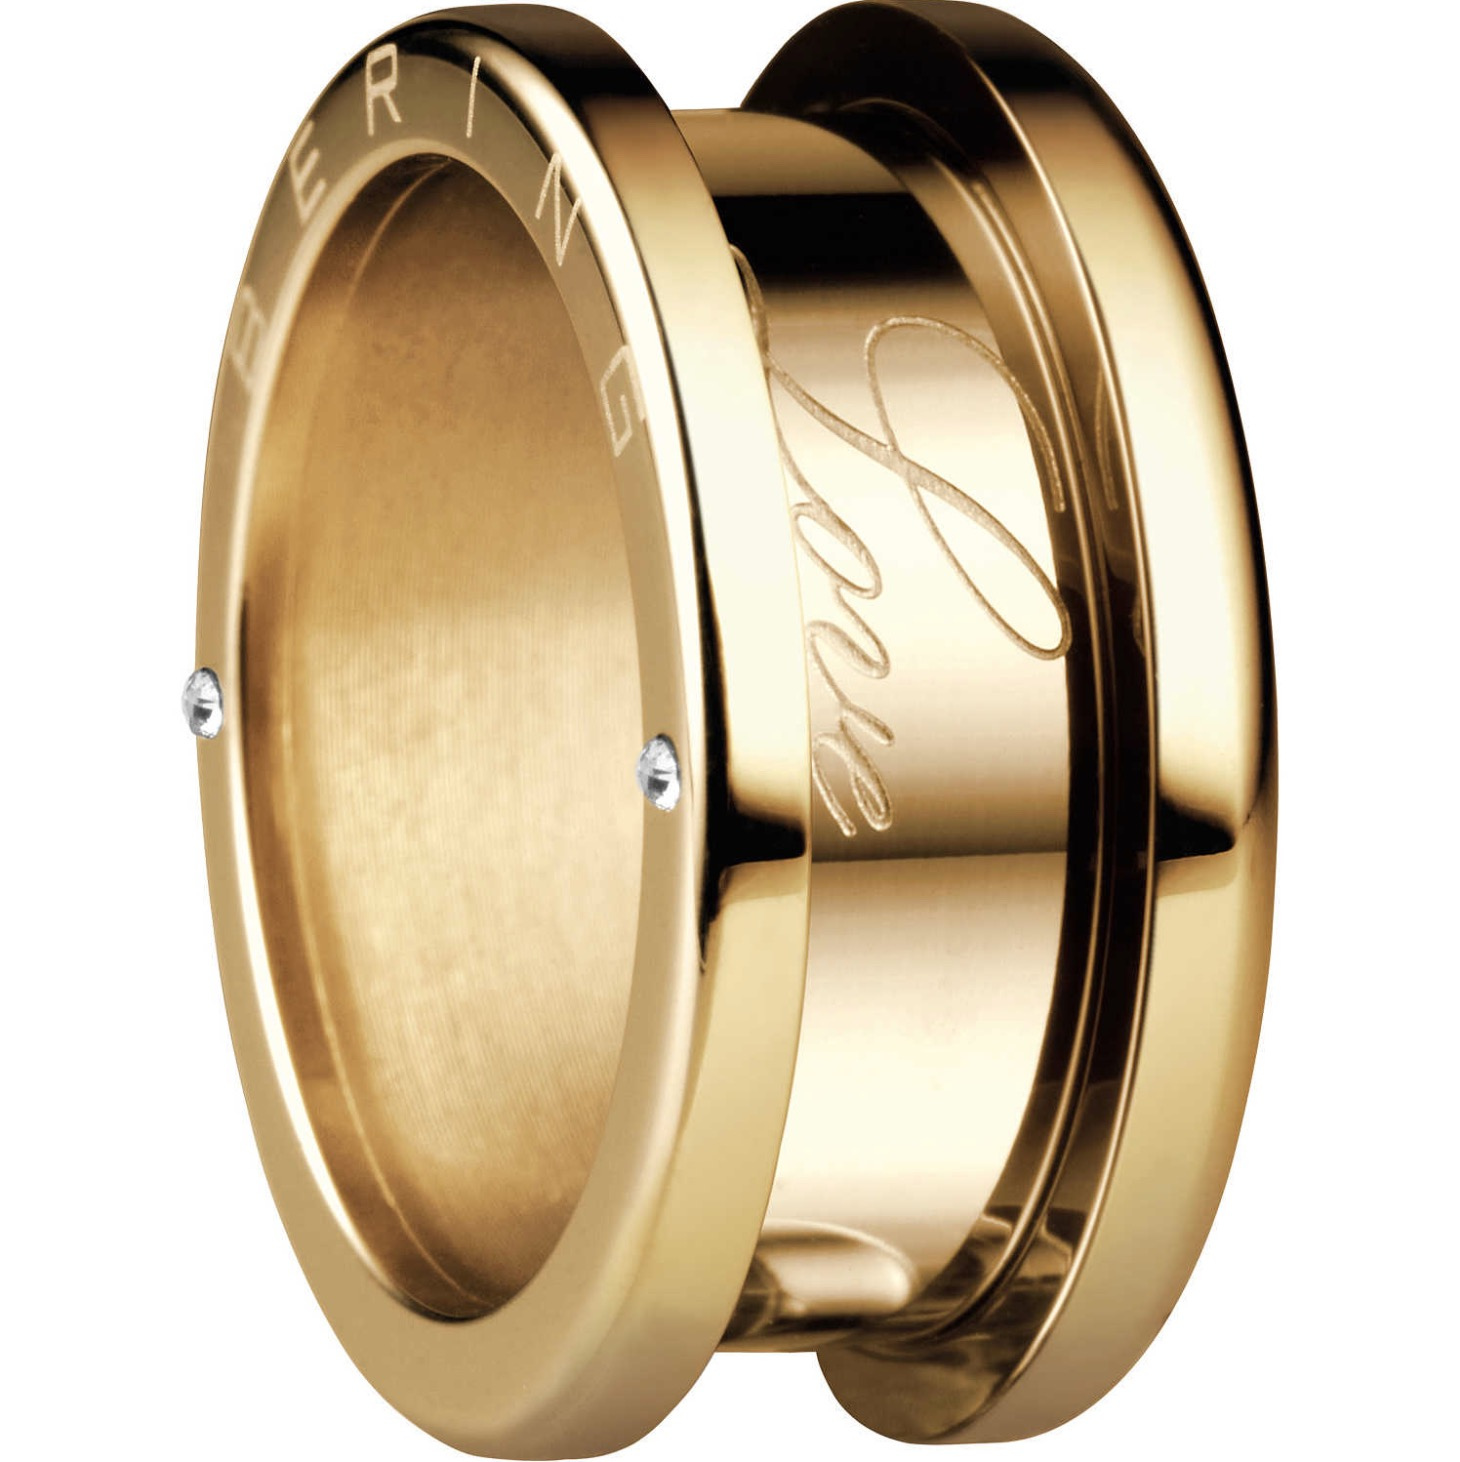 Bering Arctic Symphony Size 55 17.4mm Diameter Polished Gold Ring 520-20-74